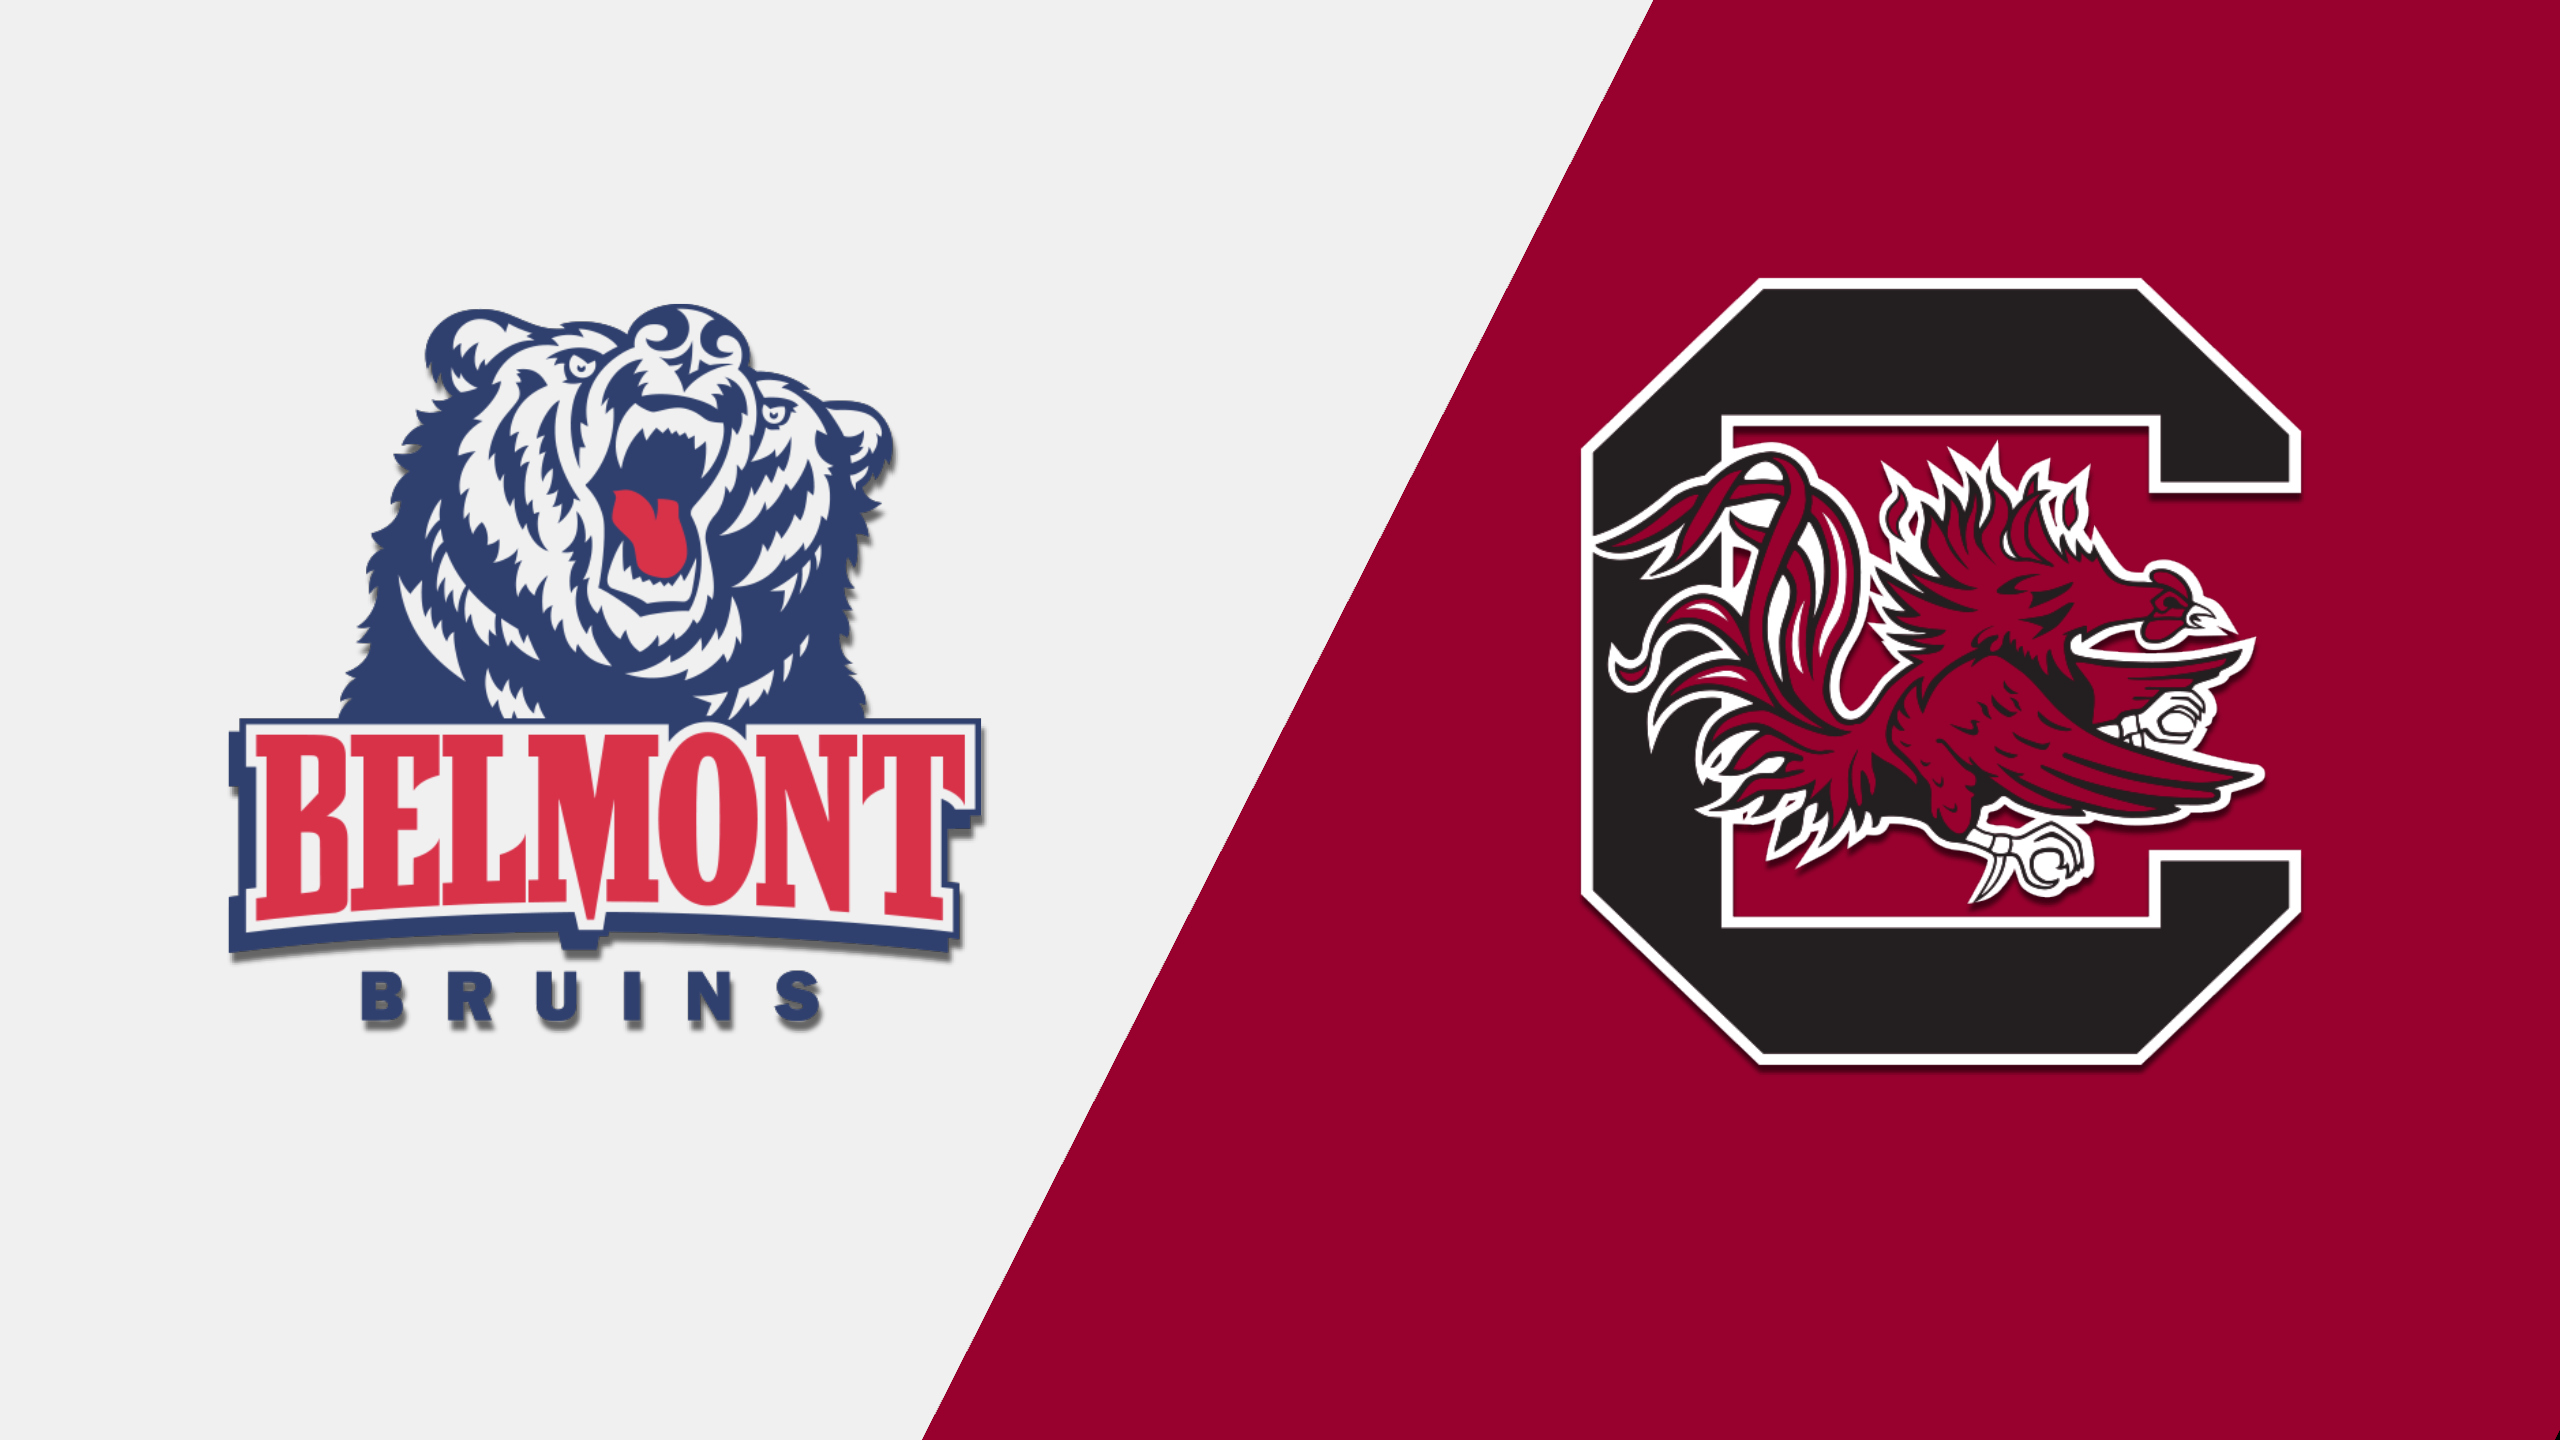 #13 Belmont vs. #4 South Carolina (First Round) (NCAA Women's Basketball Championship)